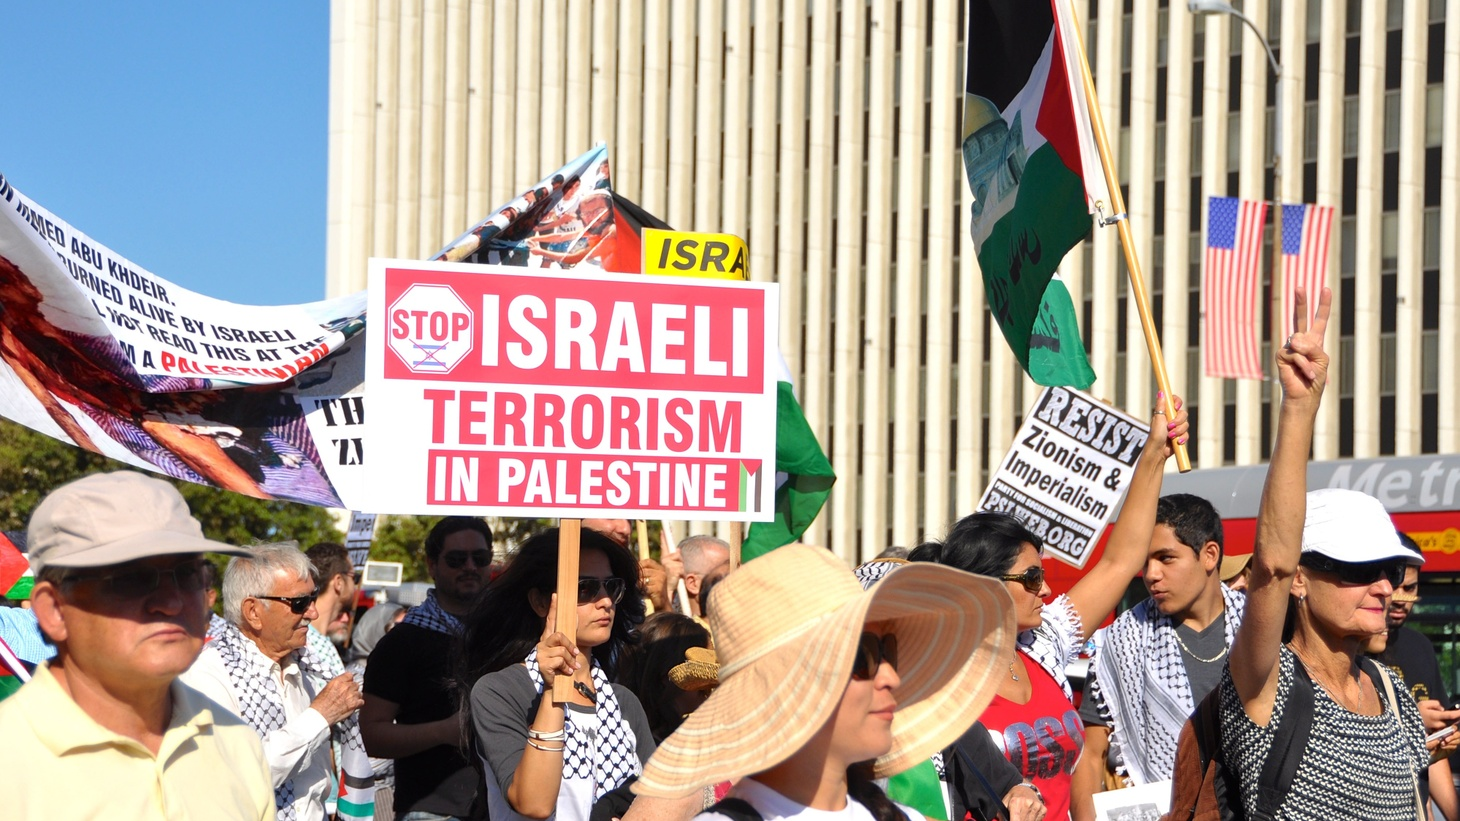 With so many Jewish and Arab residents, greater Los Angeles is deeply connected to events in the Middle East. Is the so-called Boycott, Divestment and Sanctions movement an effective tool of justice for Palestinians or a one-sided attack on Israel?